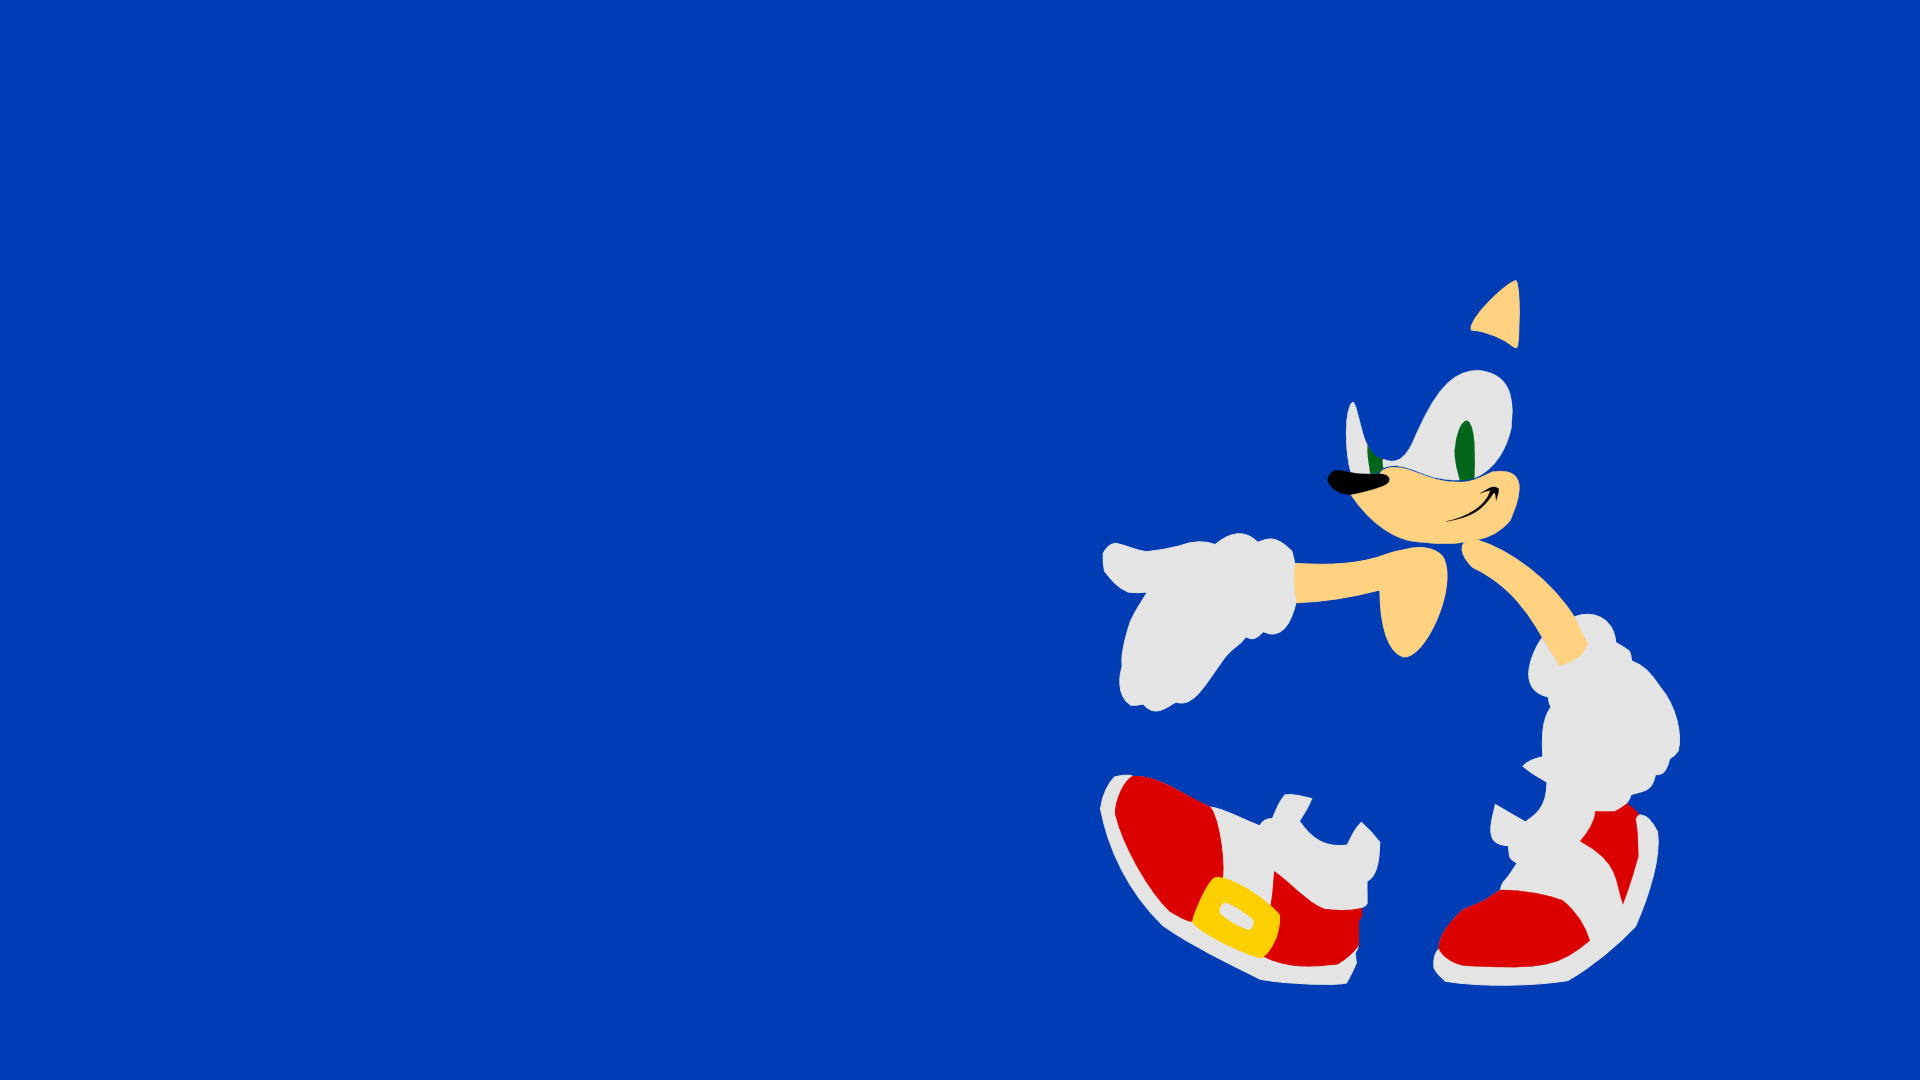 Sonic-1080p-http-and-backgrounds-net-sonic-1080p-wallpaper-wp36010655